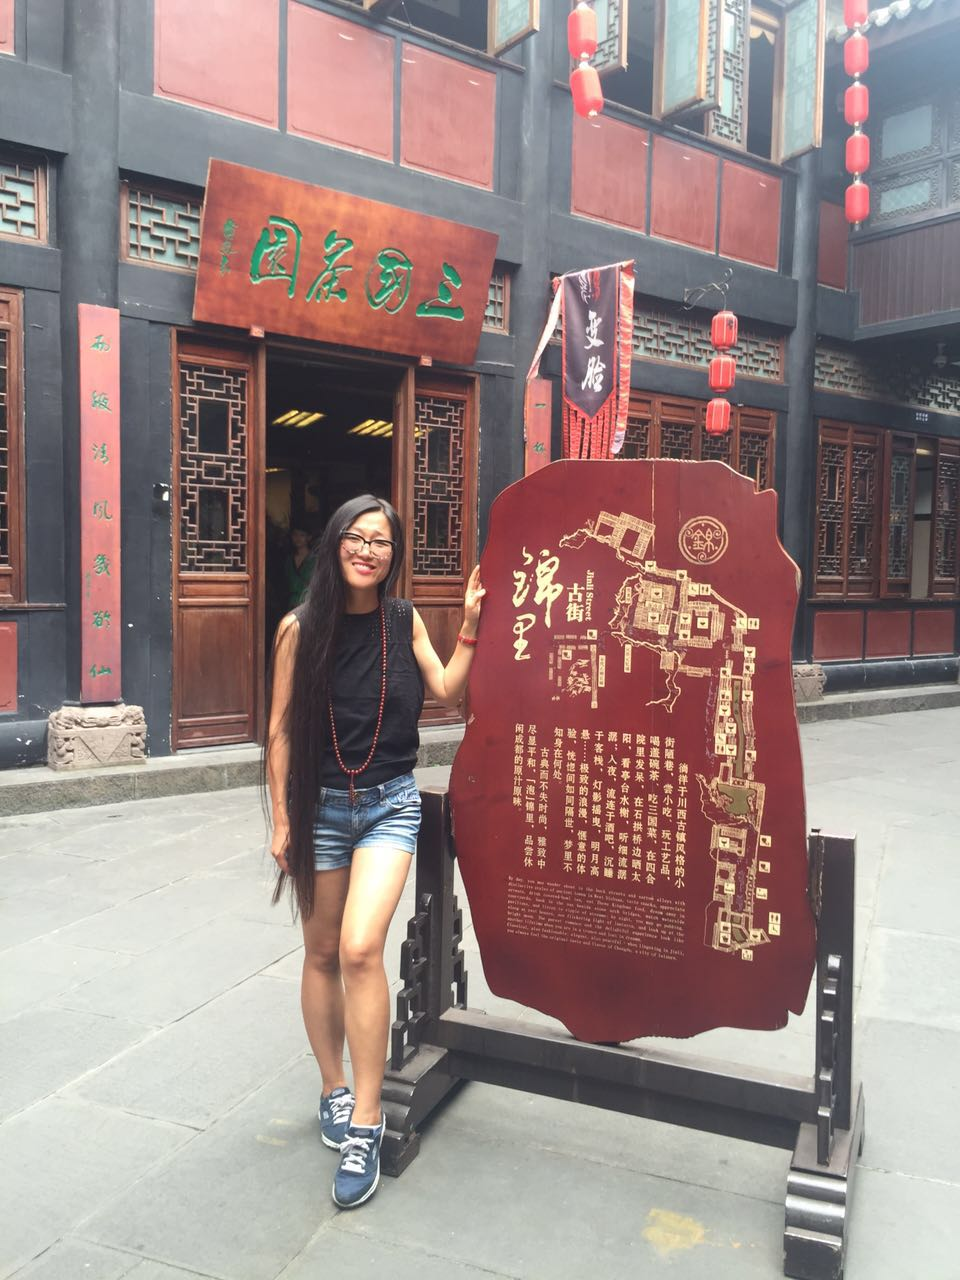 Wang Yan (Angie) in South of China